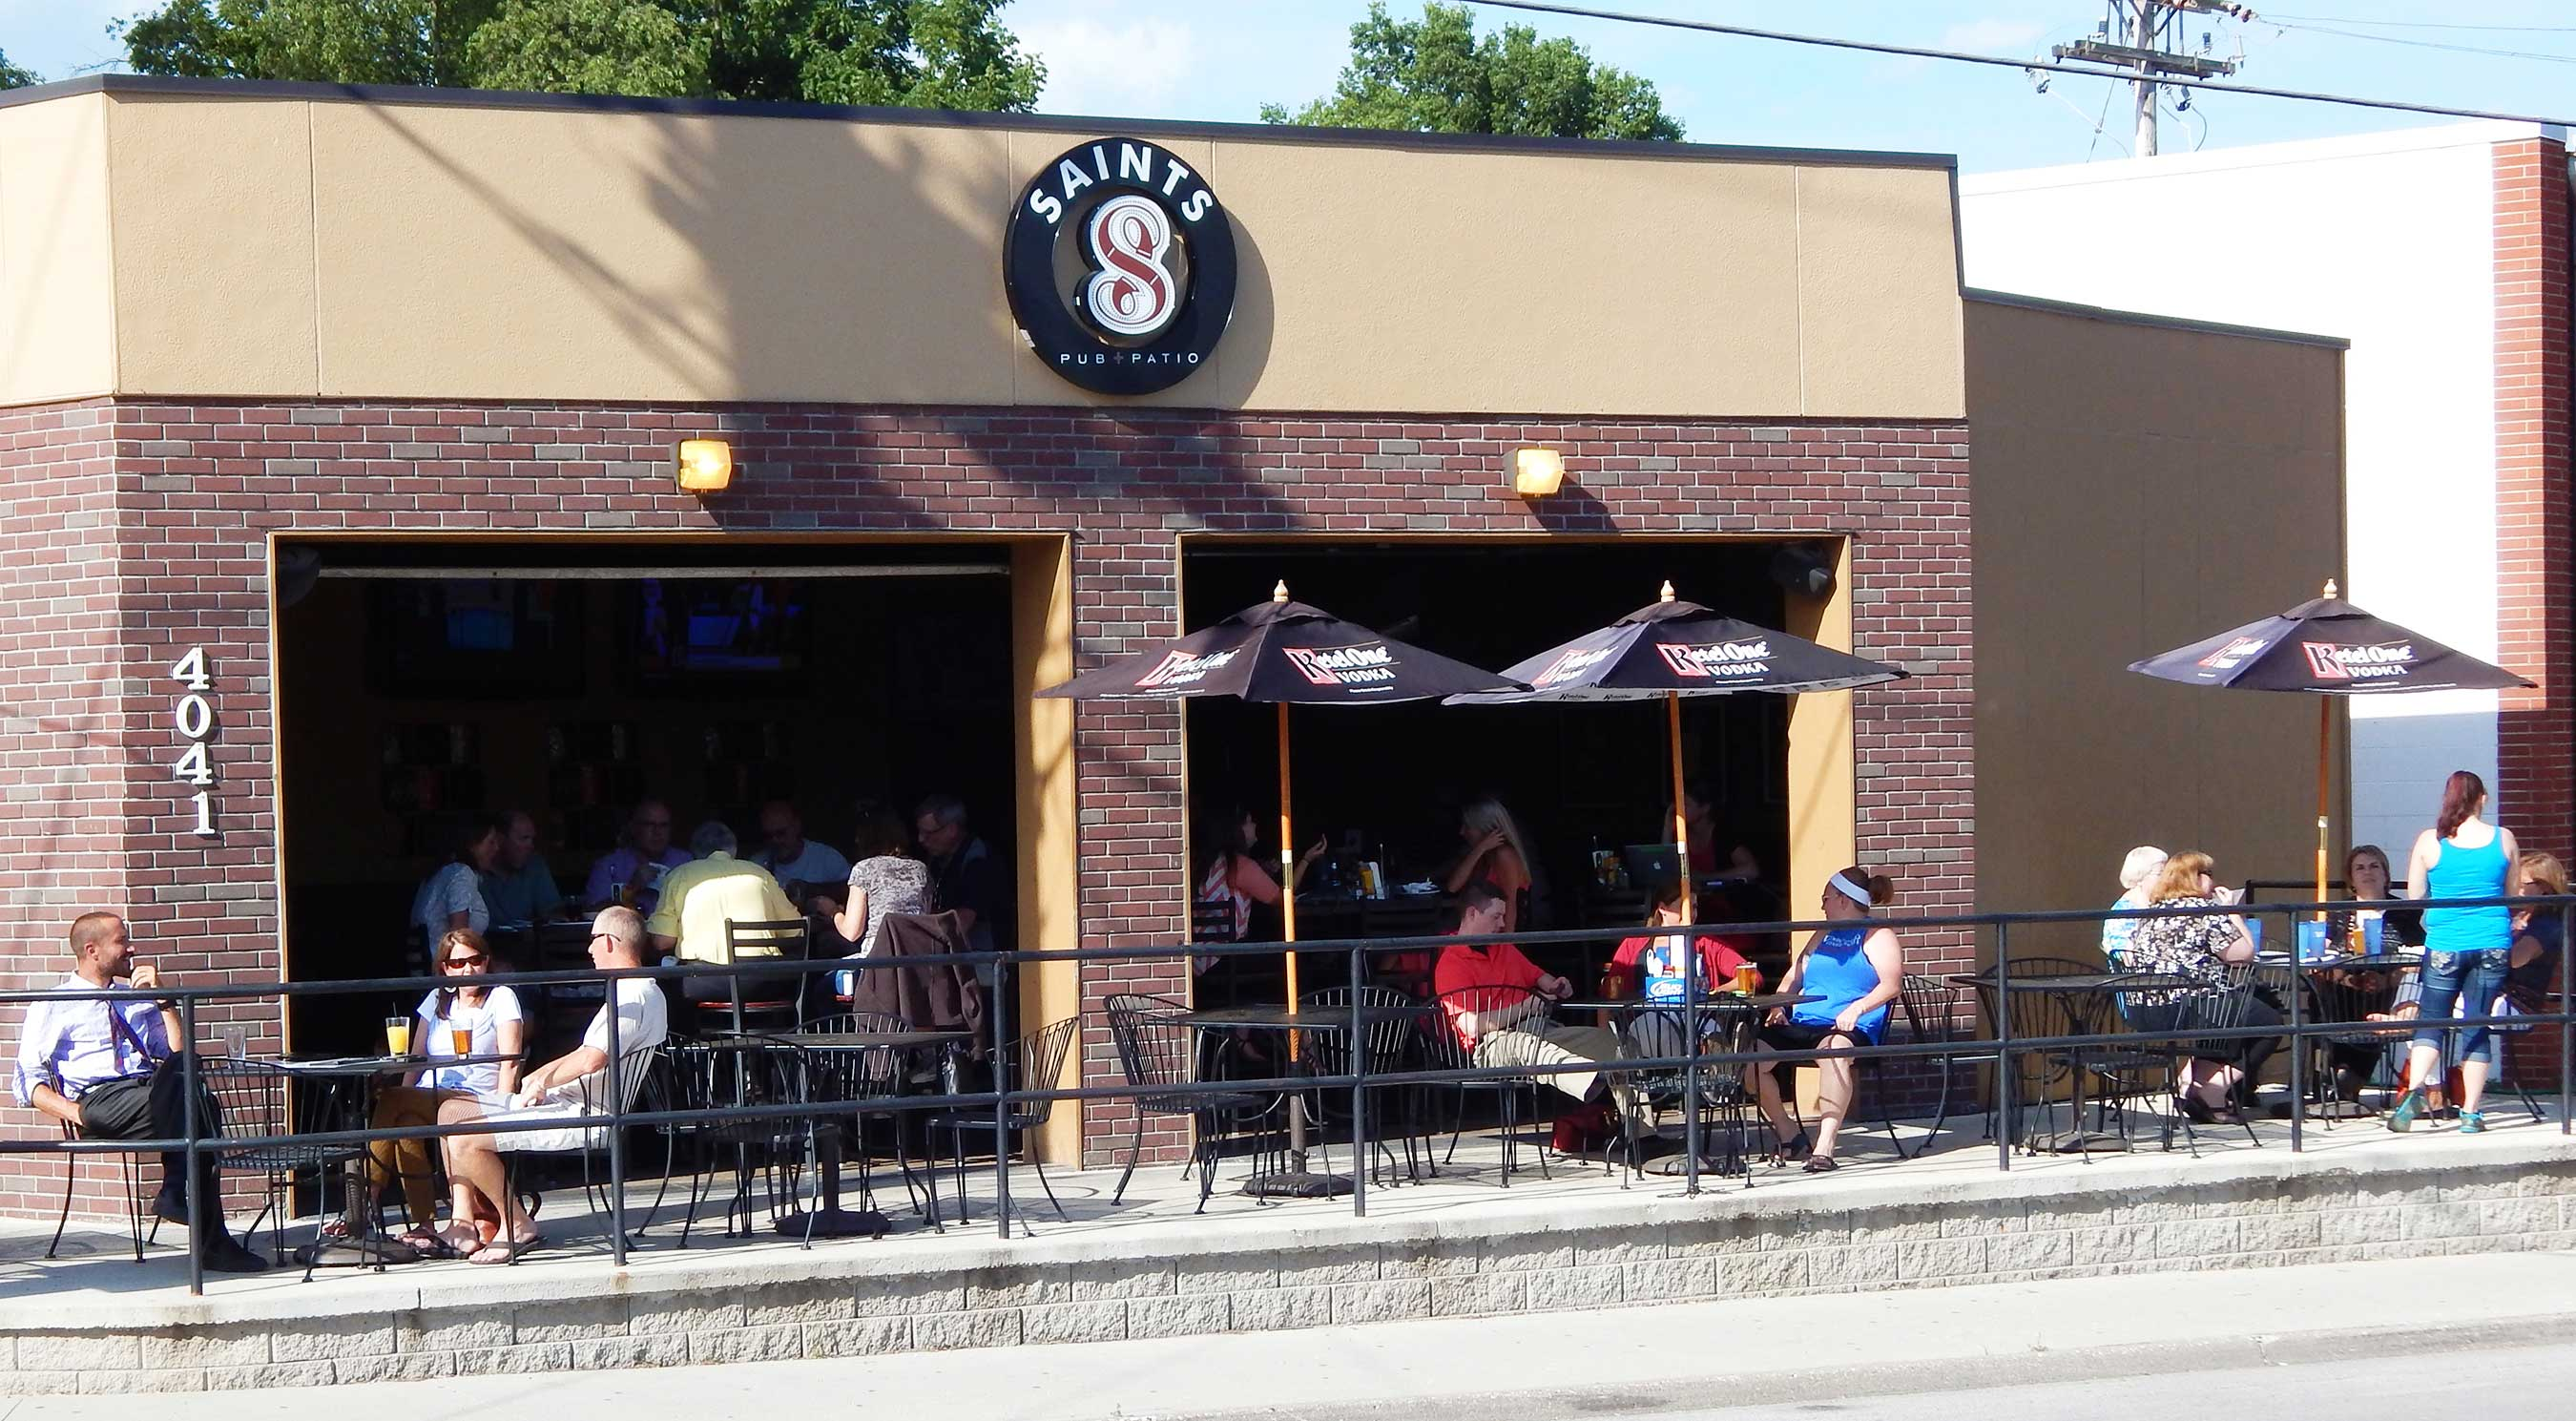 Saints Pub + Patio now open in Beaverdale